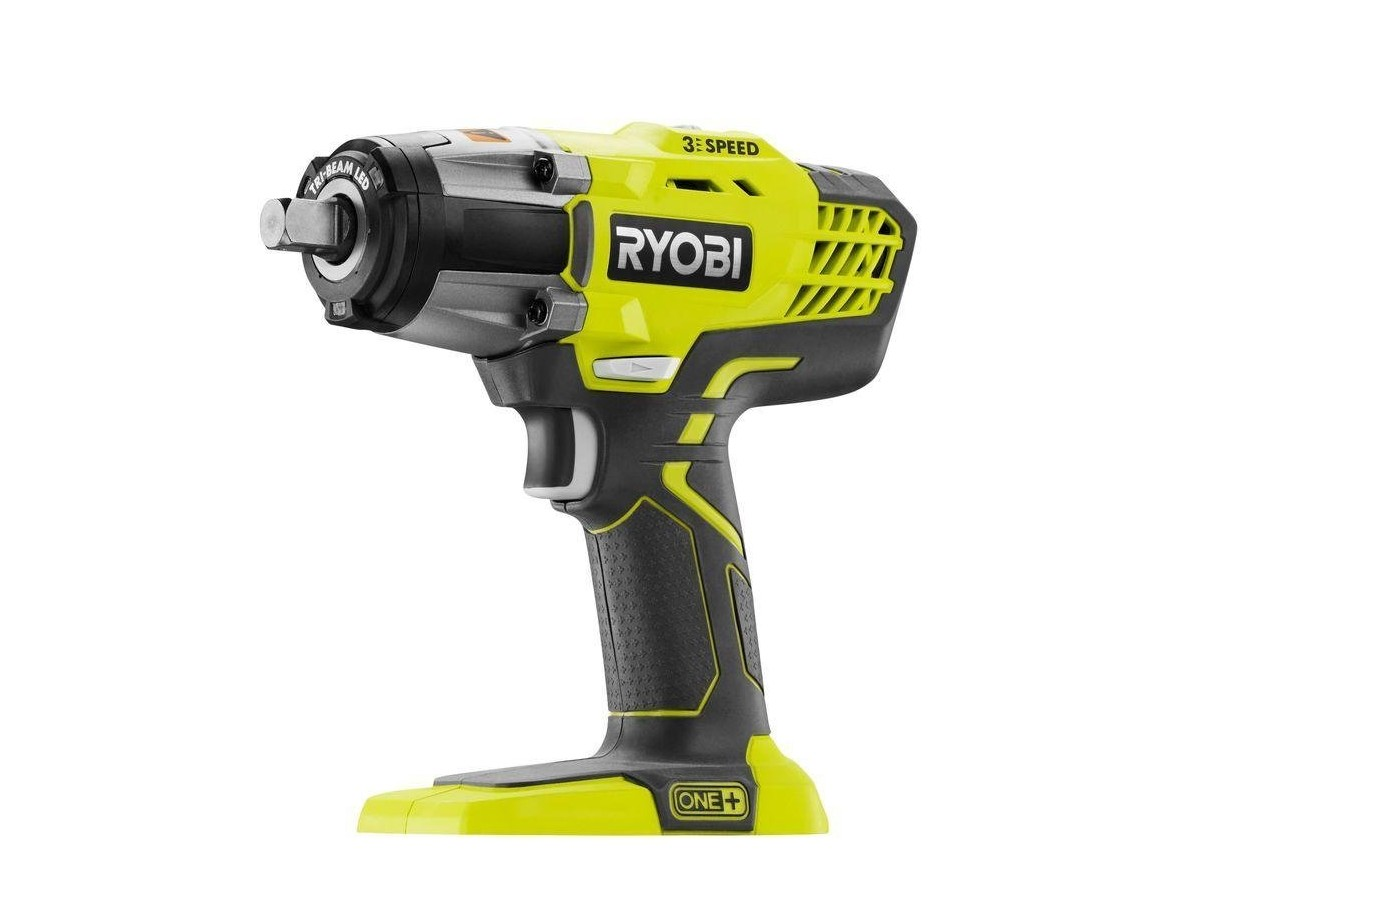 The Ryobi P261 comes at an affordable price